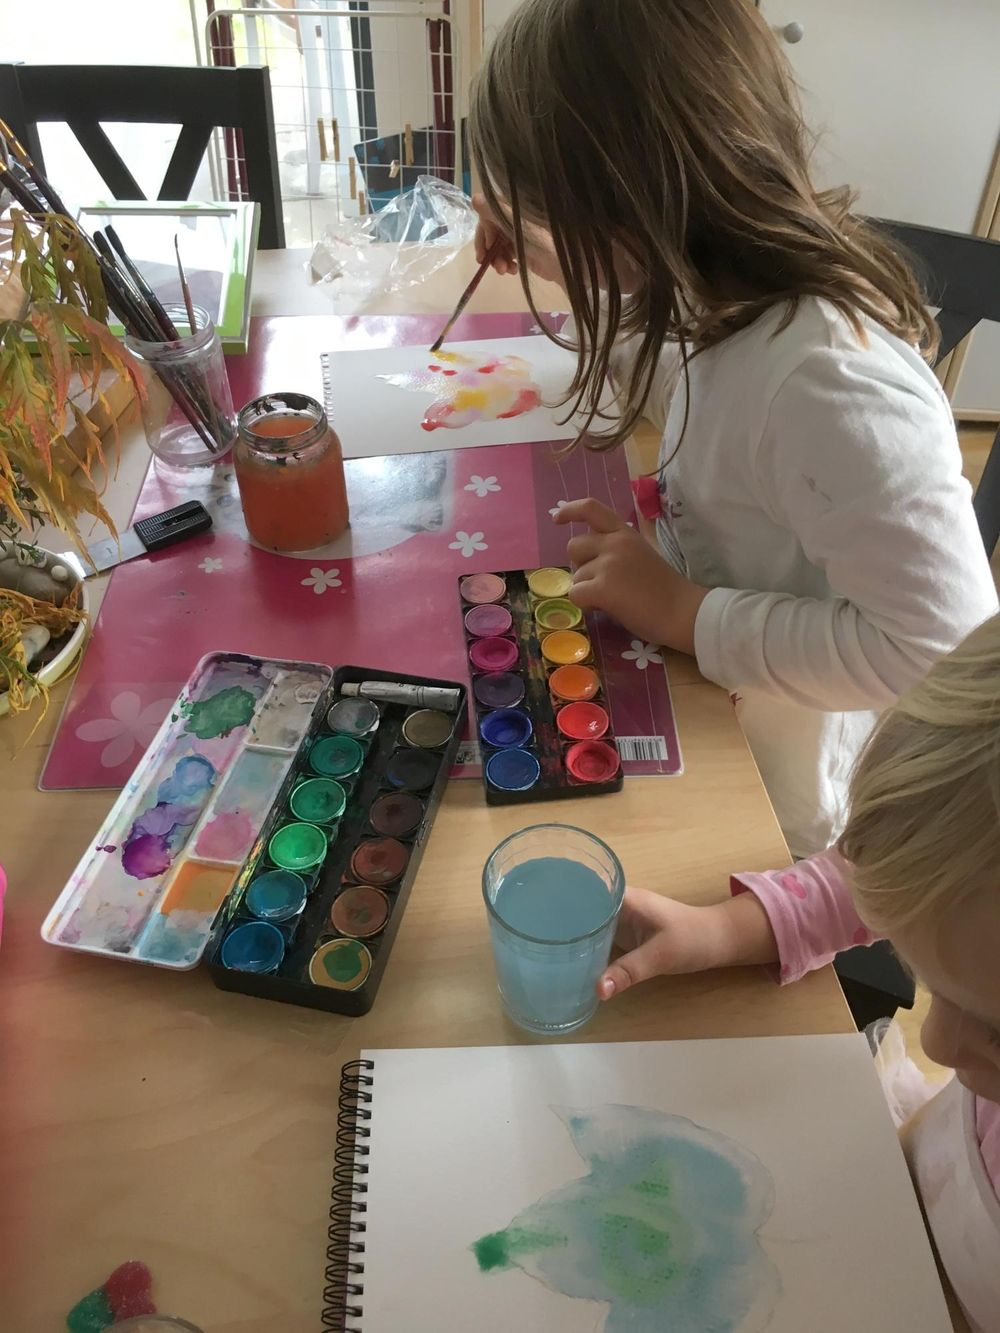 Painting Autumn Leaves as Kid's Activity - image 2 - student project